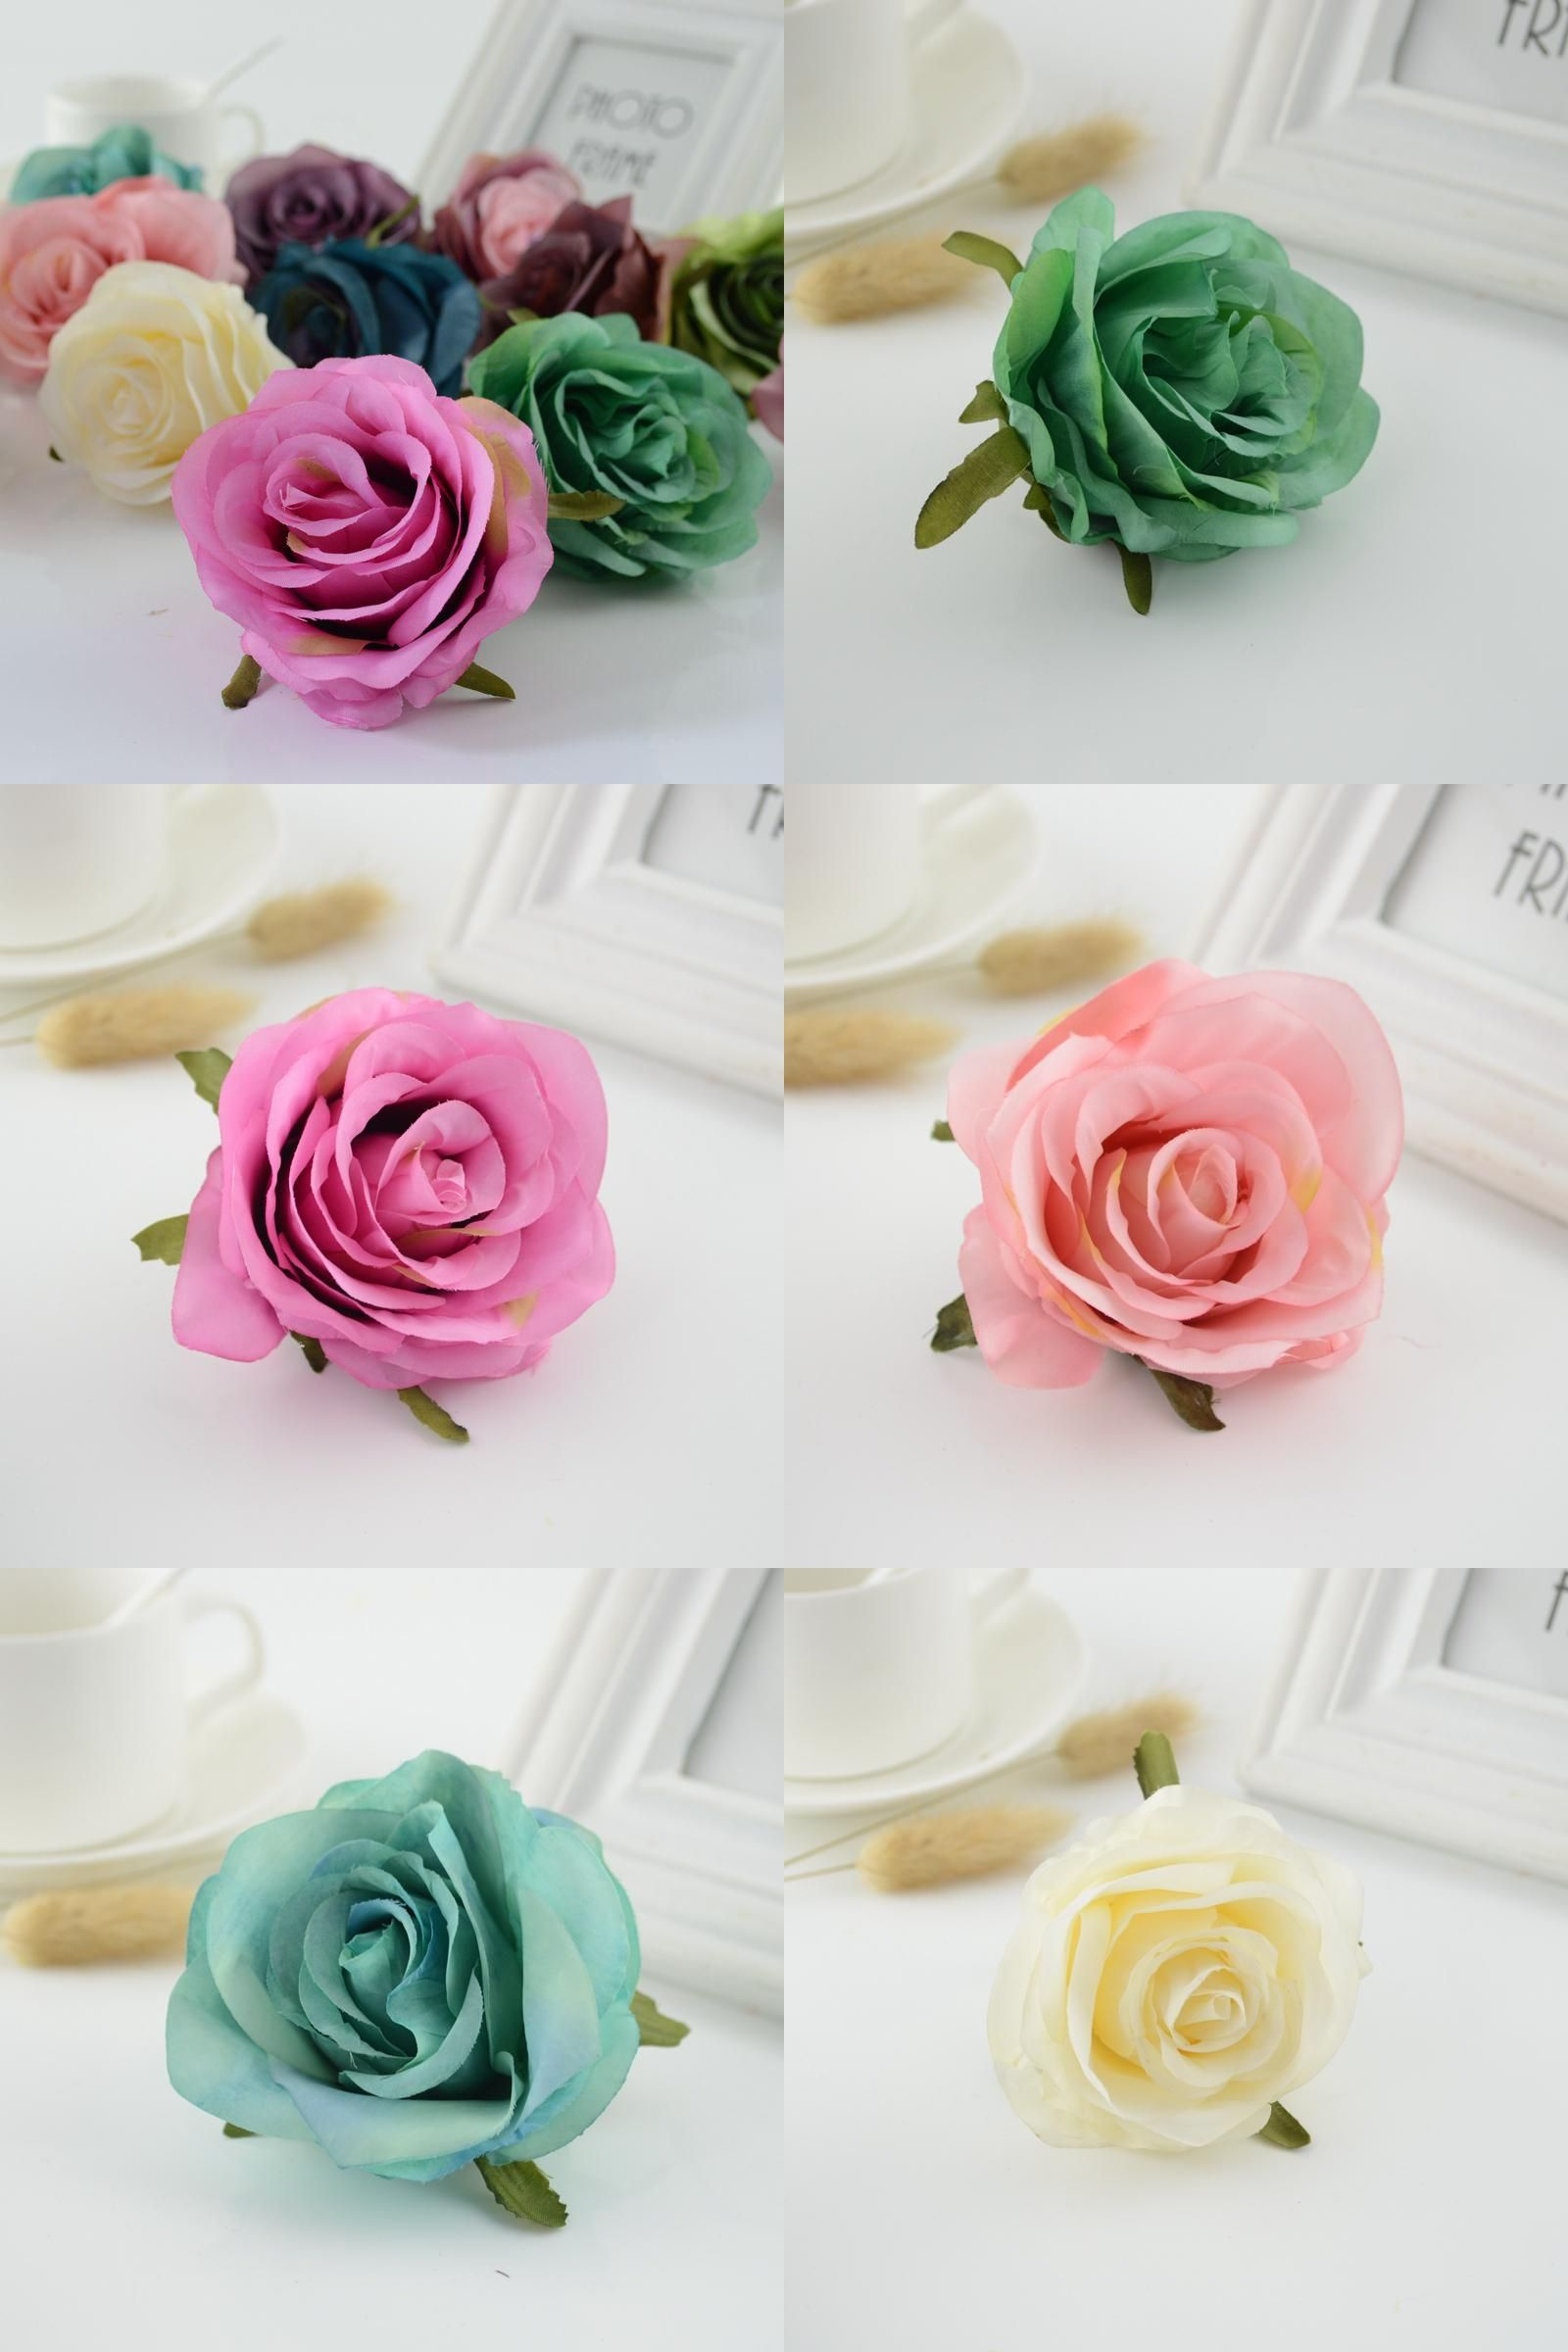 Visit to buy 1pcs artificial flower roses head for home wedding car visit to buy artificial flower roses head for home wedding car decoration new year christmas decorative flower bride bouquet accessories junglespirit Gallery